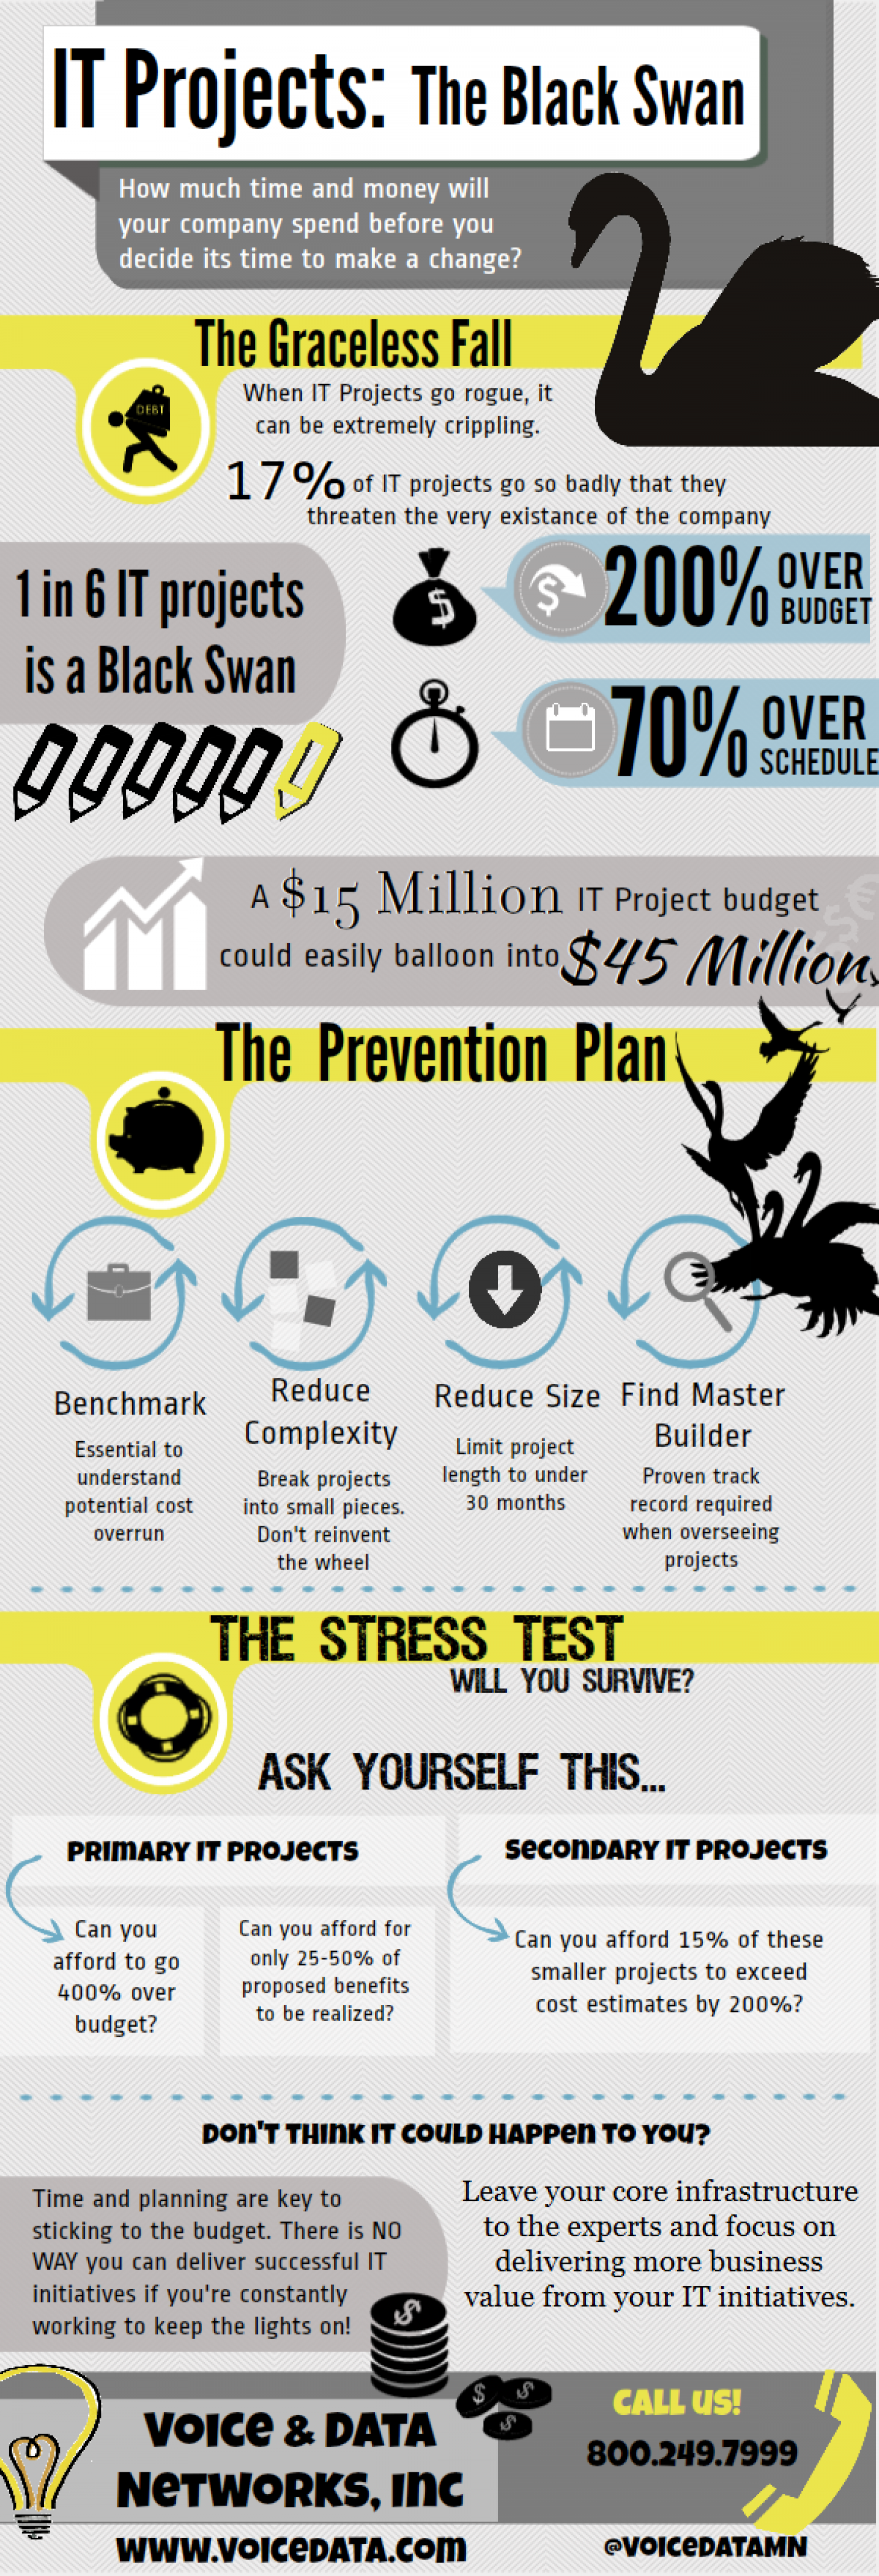 IT Projects: The Black Swan Infographic